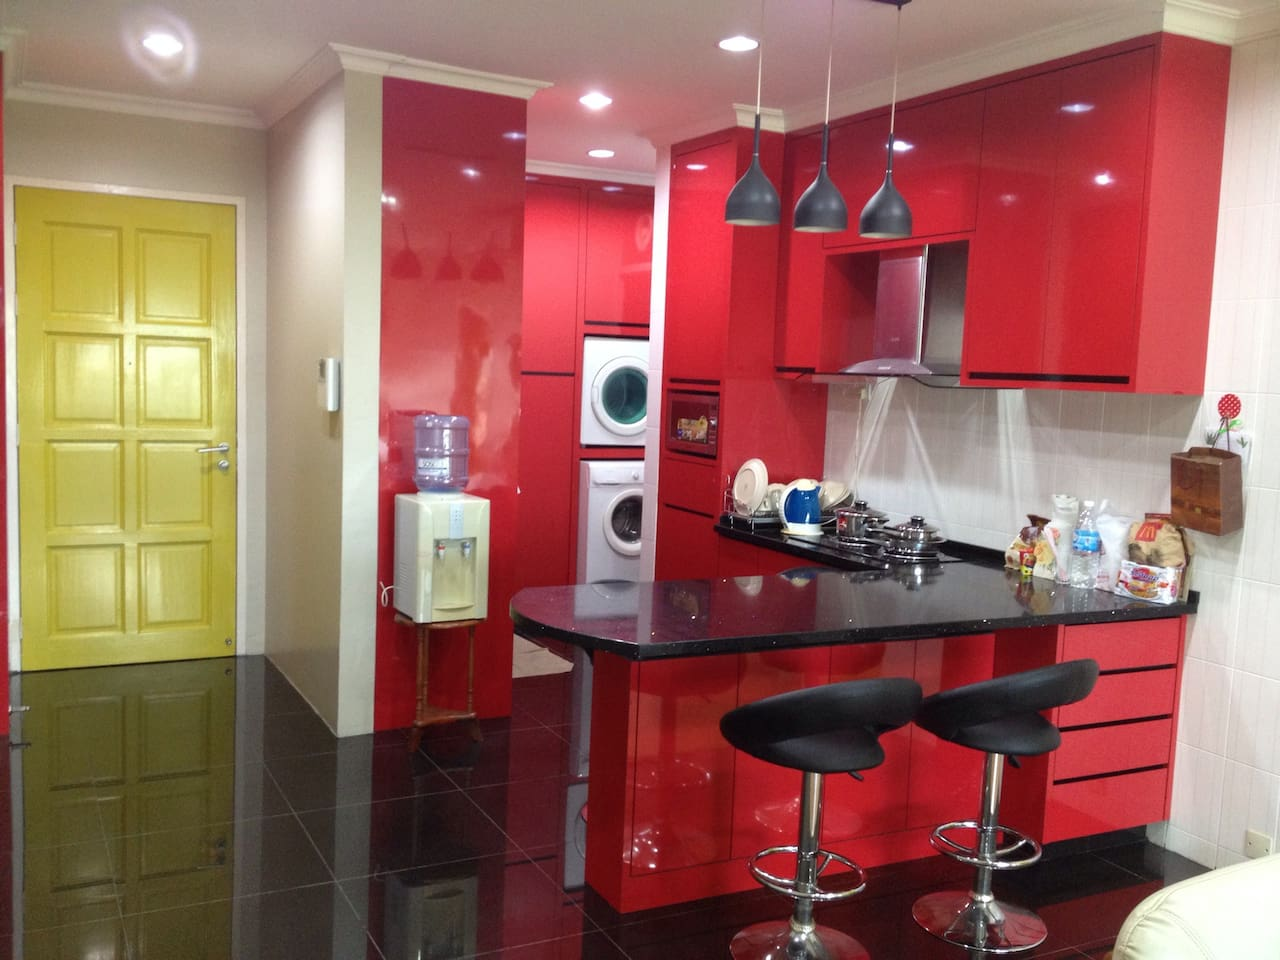 Modern kitchen with electrical cooking stove, comprehensive cooking tools are provided too. Equipped with microwave, frige, washing machine and dryer.